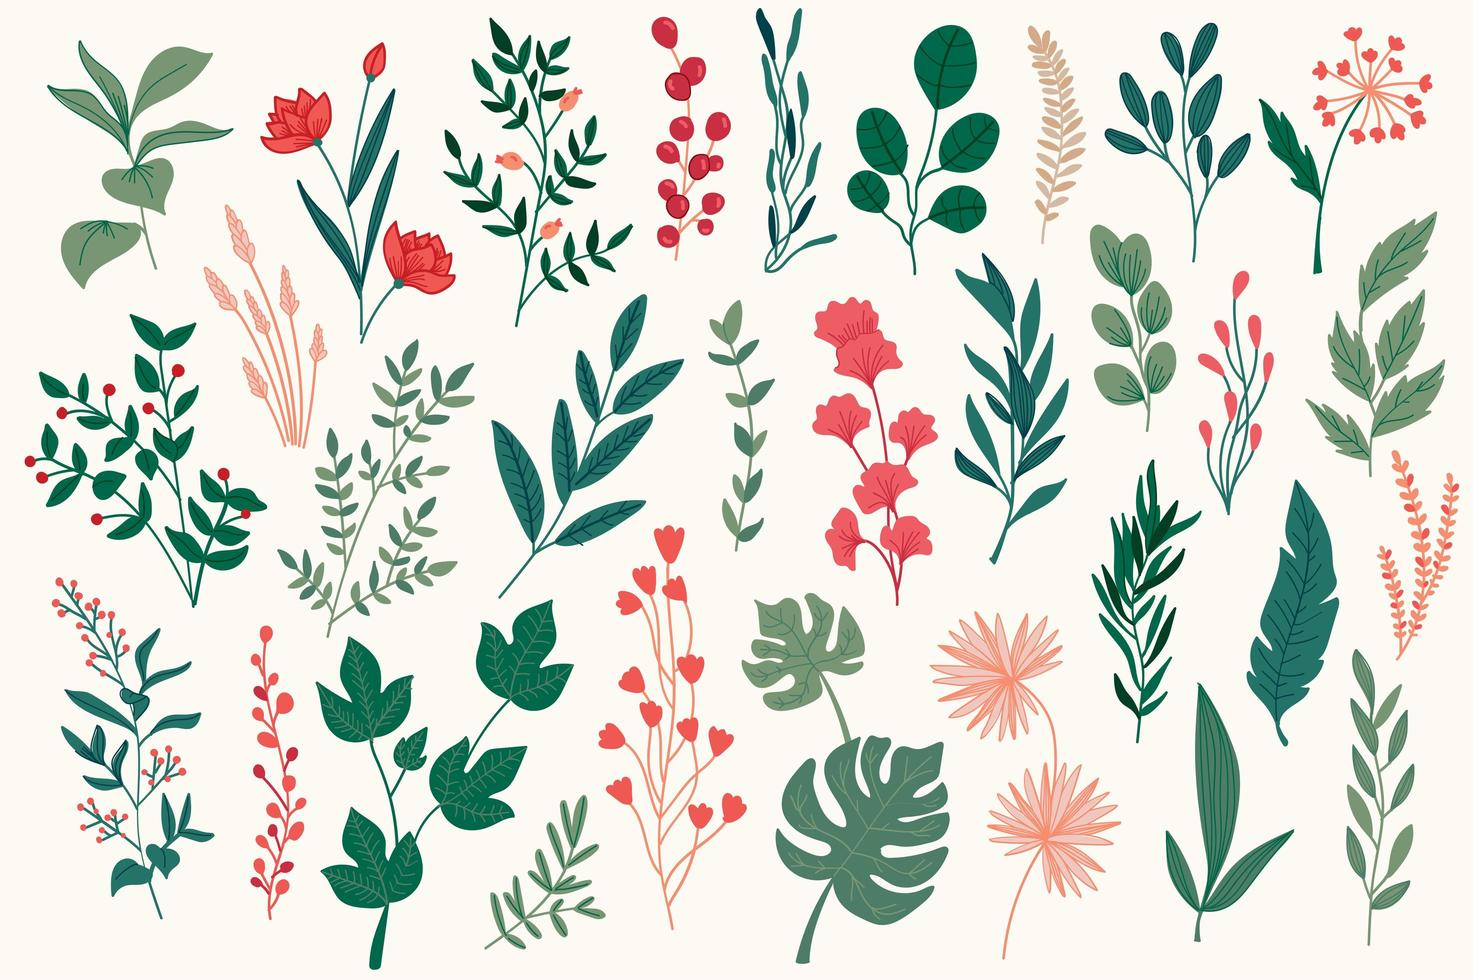 Botanical elements, hand drawn graphic pack. vector